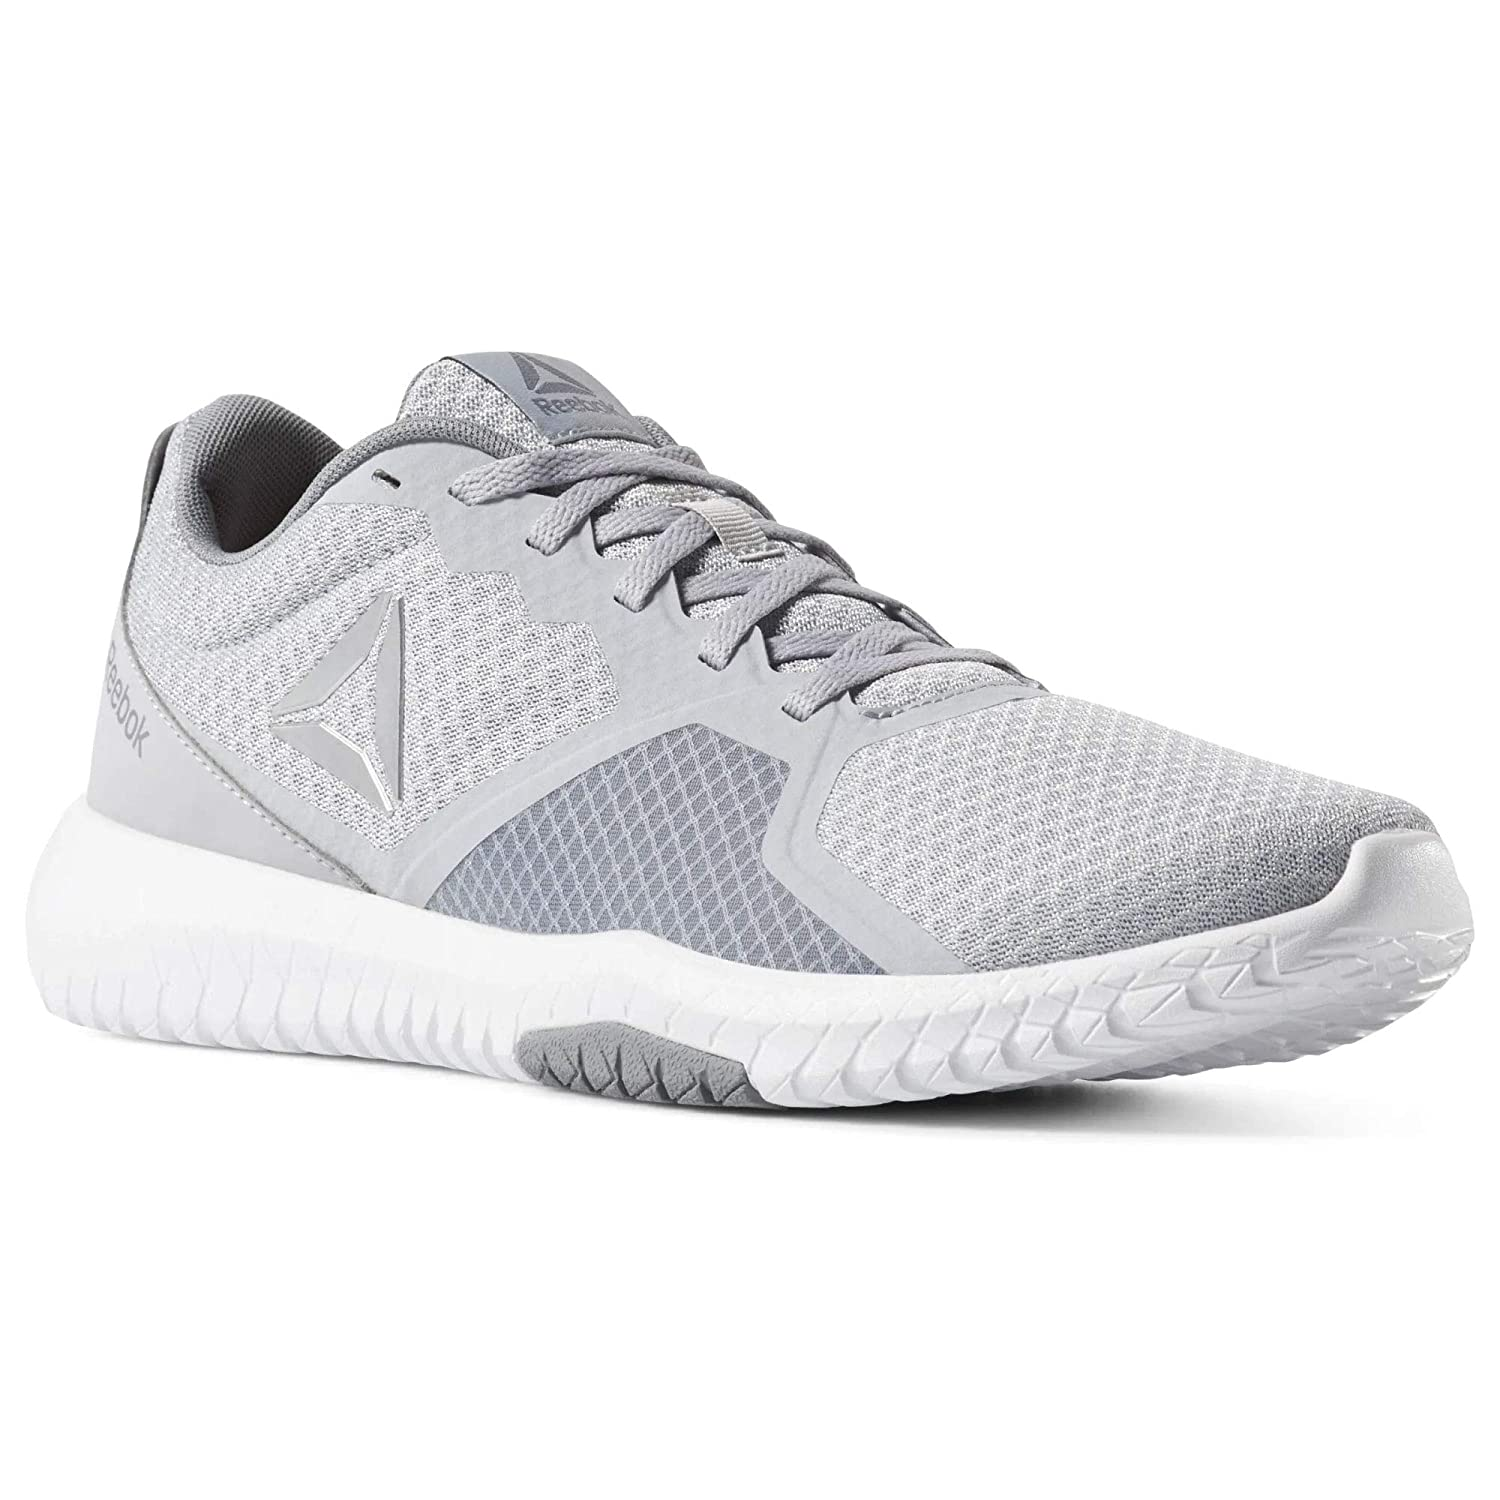 MultiCouleure (Cold gris blanc Neon Lime argent 000) 42 EU Reebok Flexagon Force, Chaussures Multisport Indoor Homme